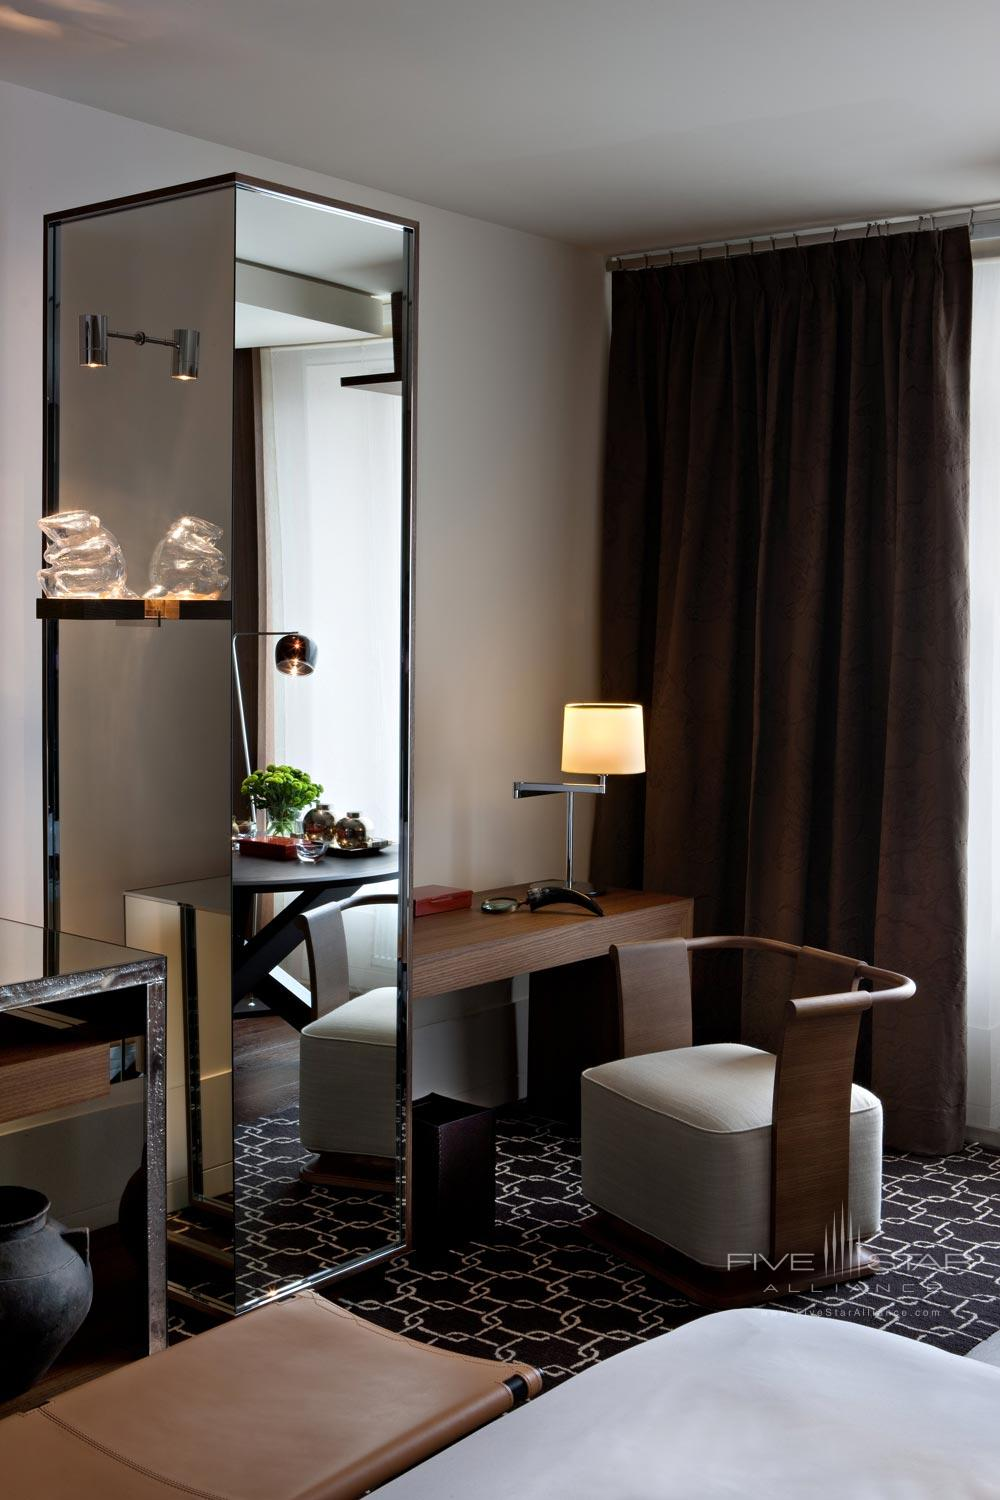 Park Guest Room Working Area at Ararat Park Hyatt Moscow, Moscow, Russia